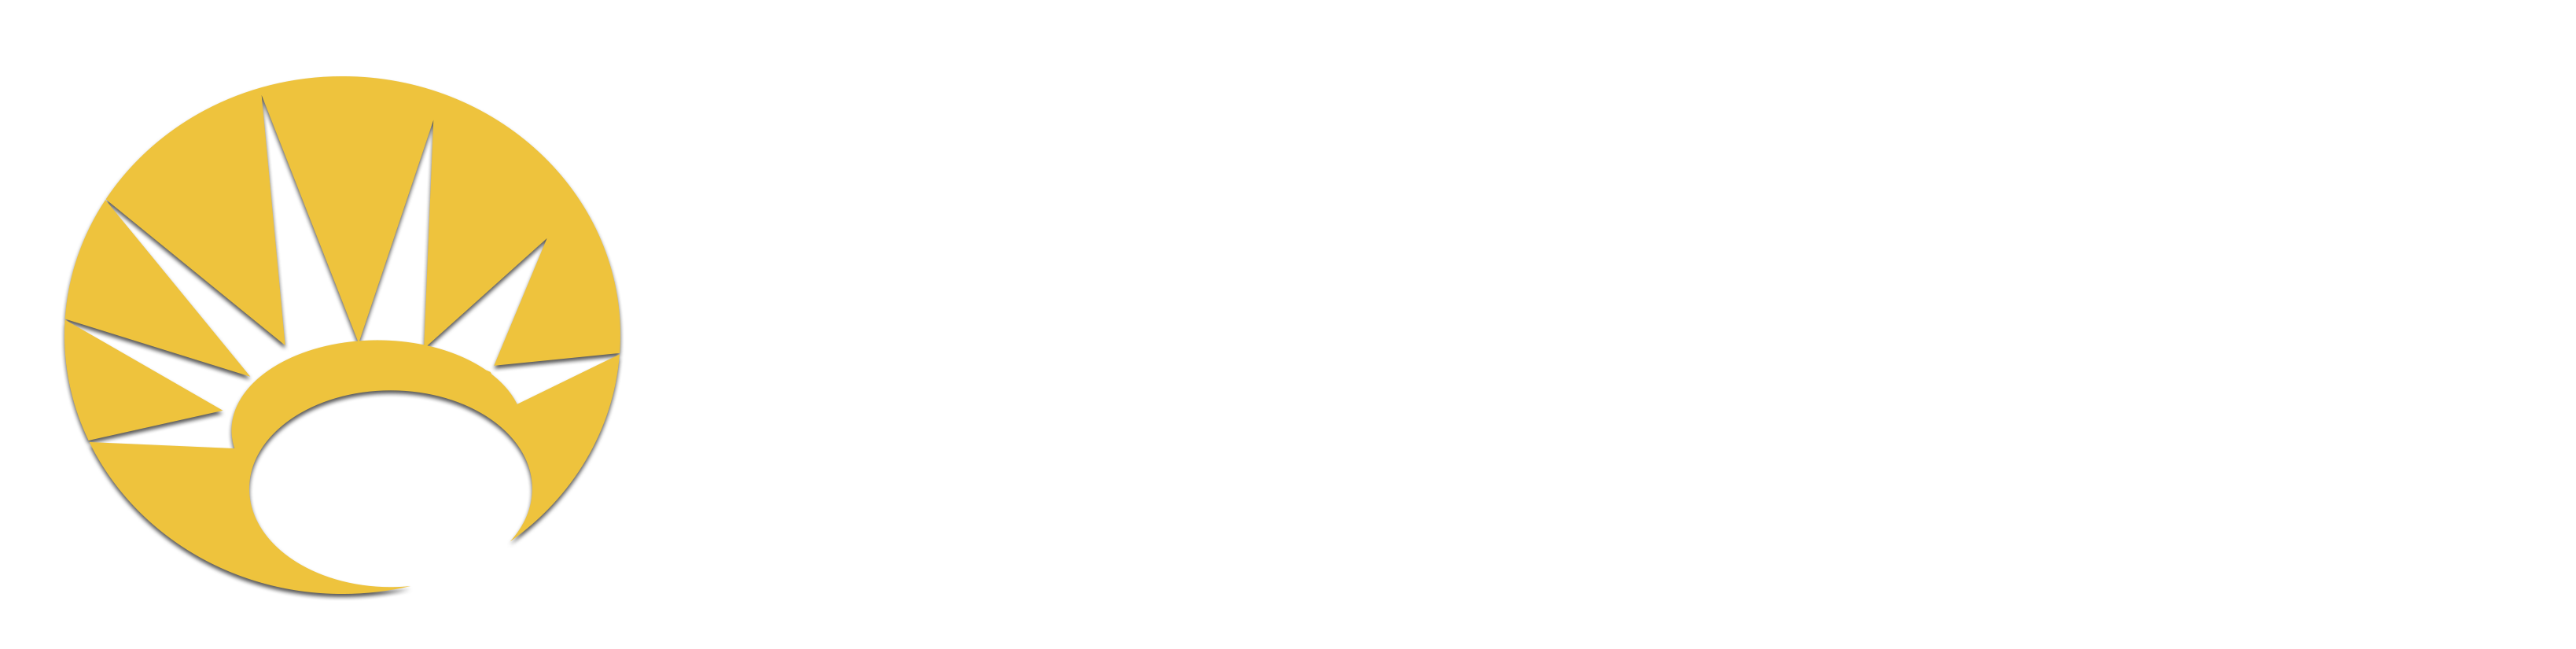 New York Attorney : Joel A  Glaser - TROLMAN GLASER CORLEY